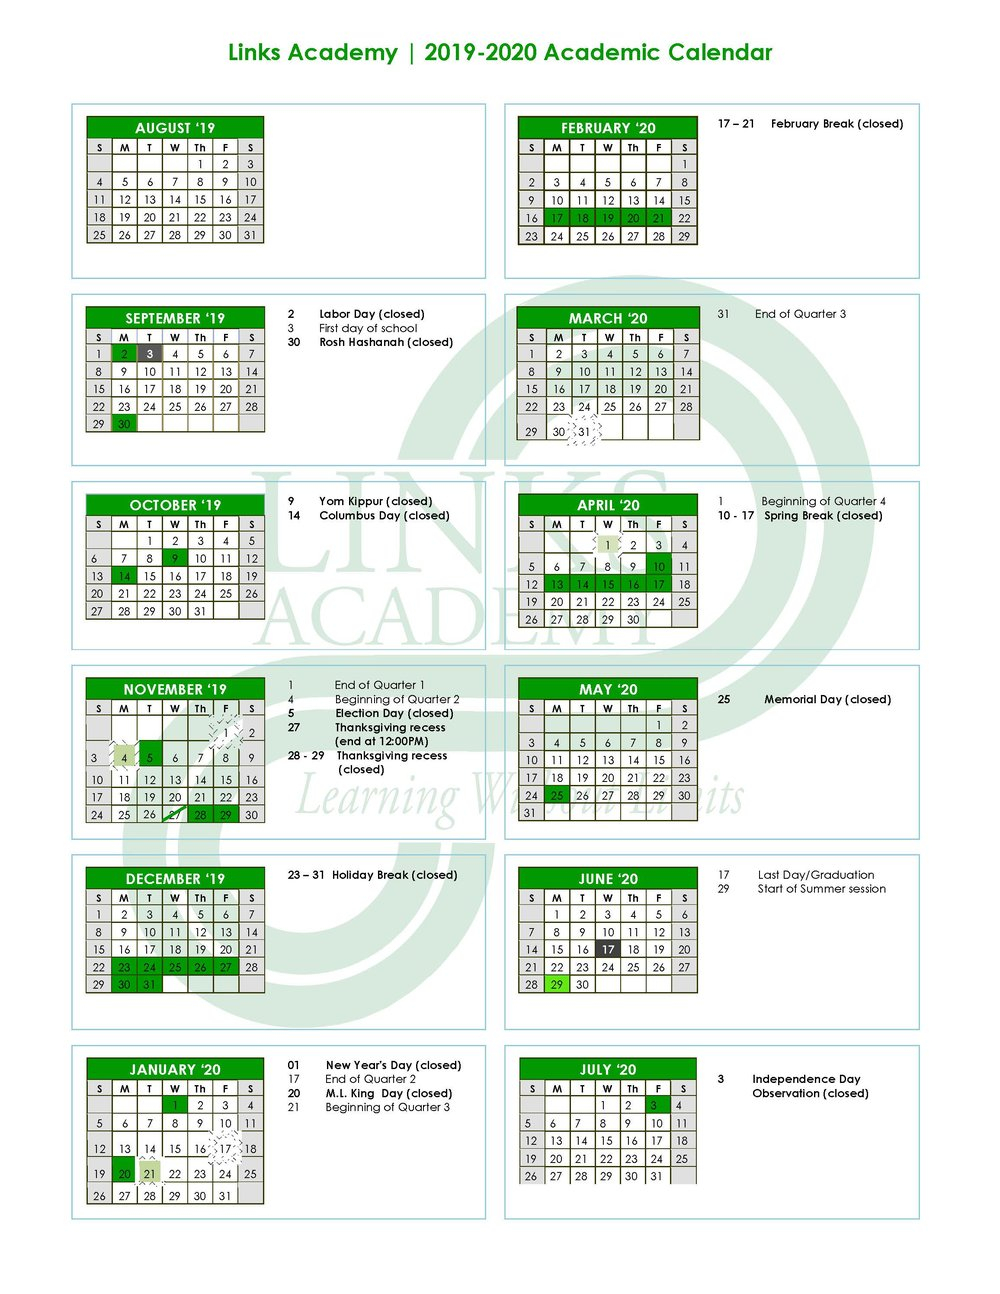 Academic Calendar — Links Academy Regarding Queensborough Community College Academic Calendar